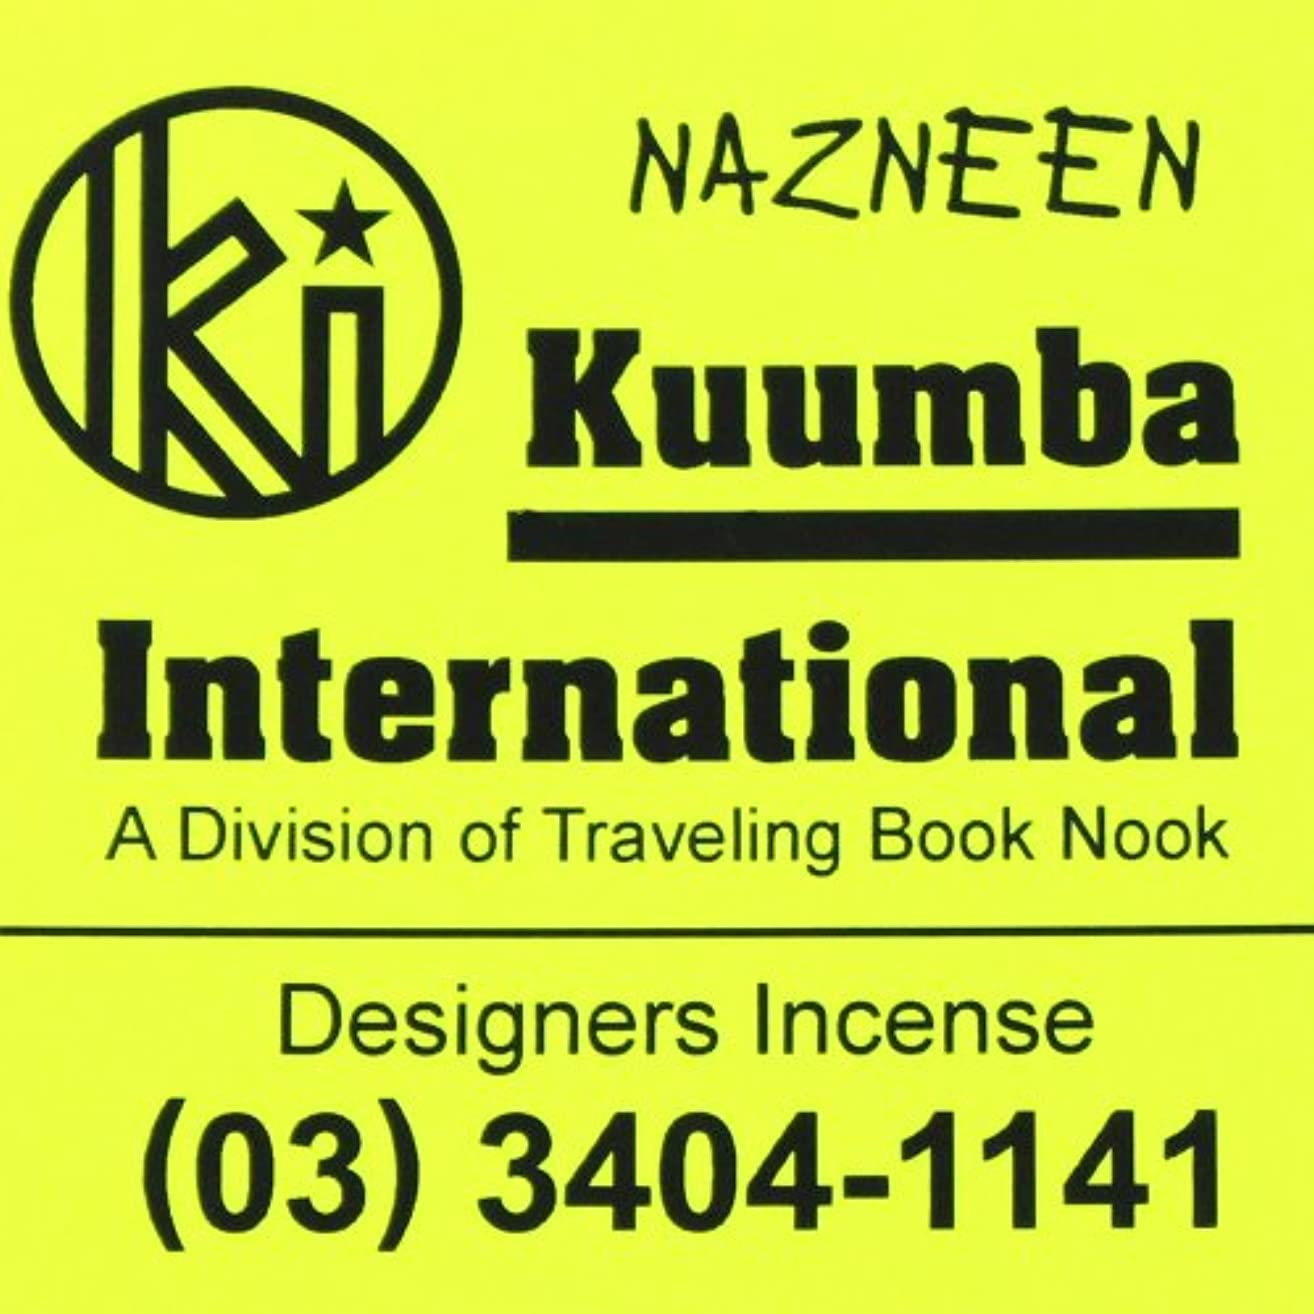 パンパスポートひねり(クンバ) KUUMBA『classic regular incense』(NAZNEEN) (Regular size)